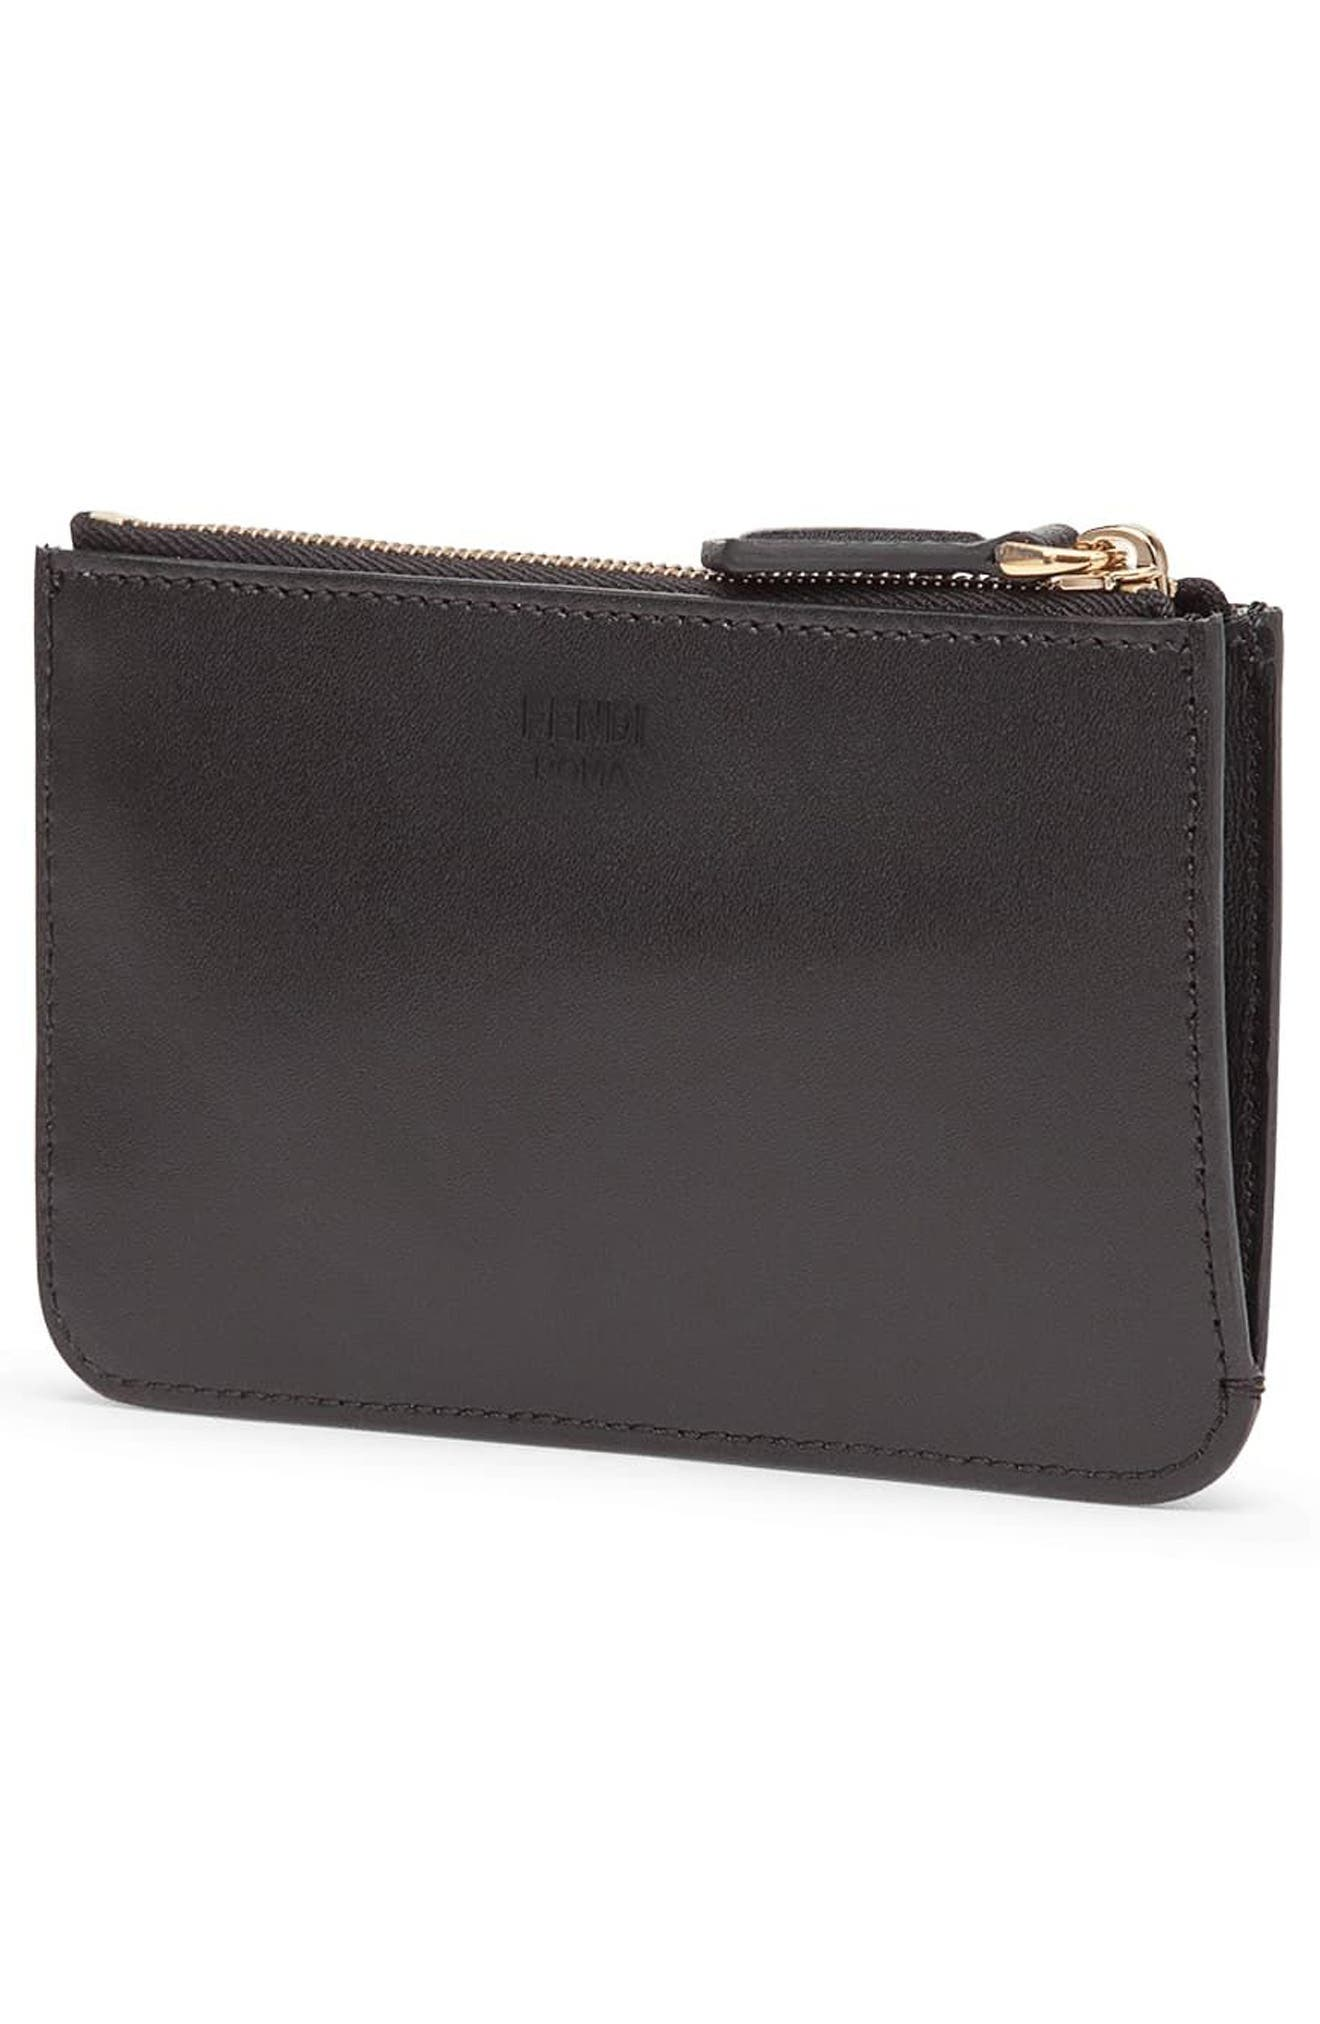 Monster Leather Key Pouch,                             Alternate thumbnail 2, color,                             NERO/ ORO SOFT